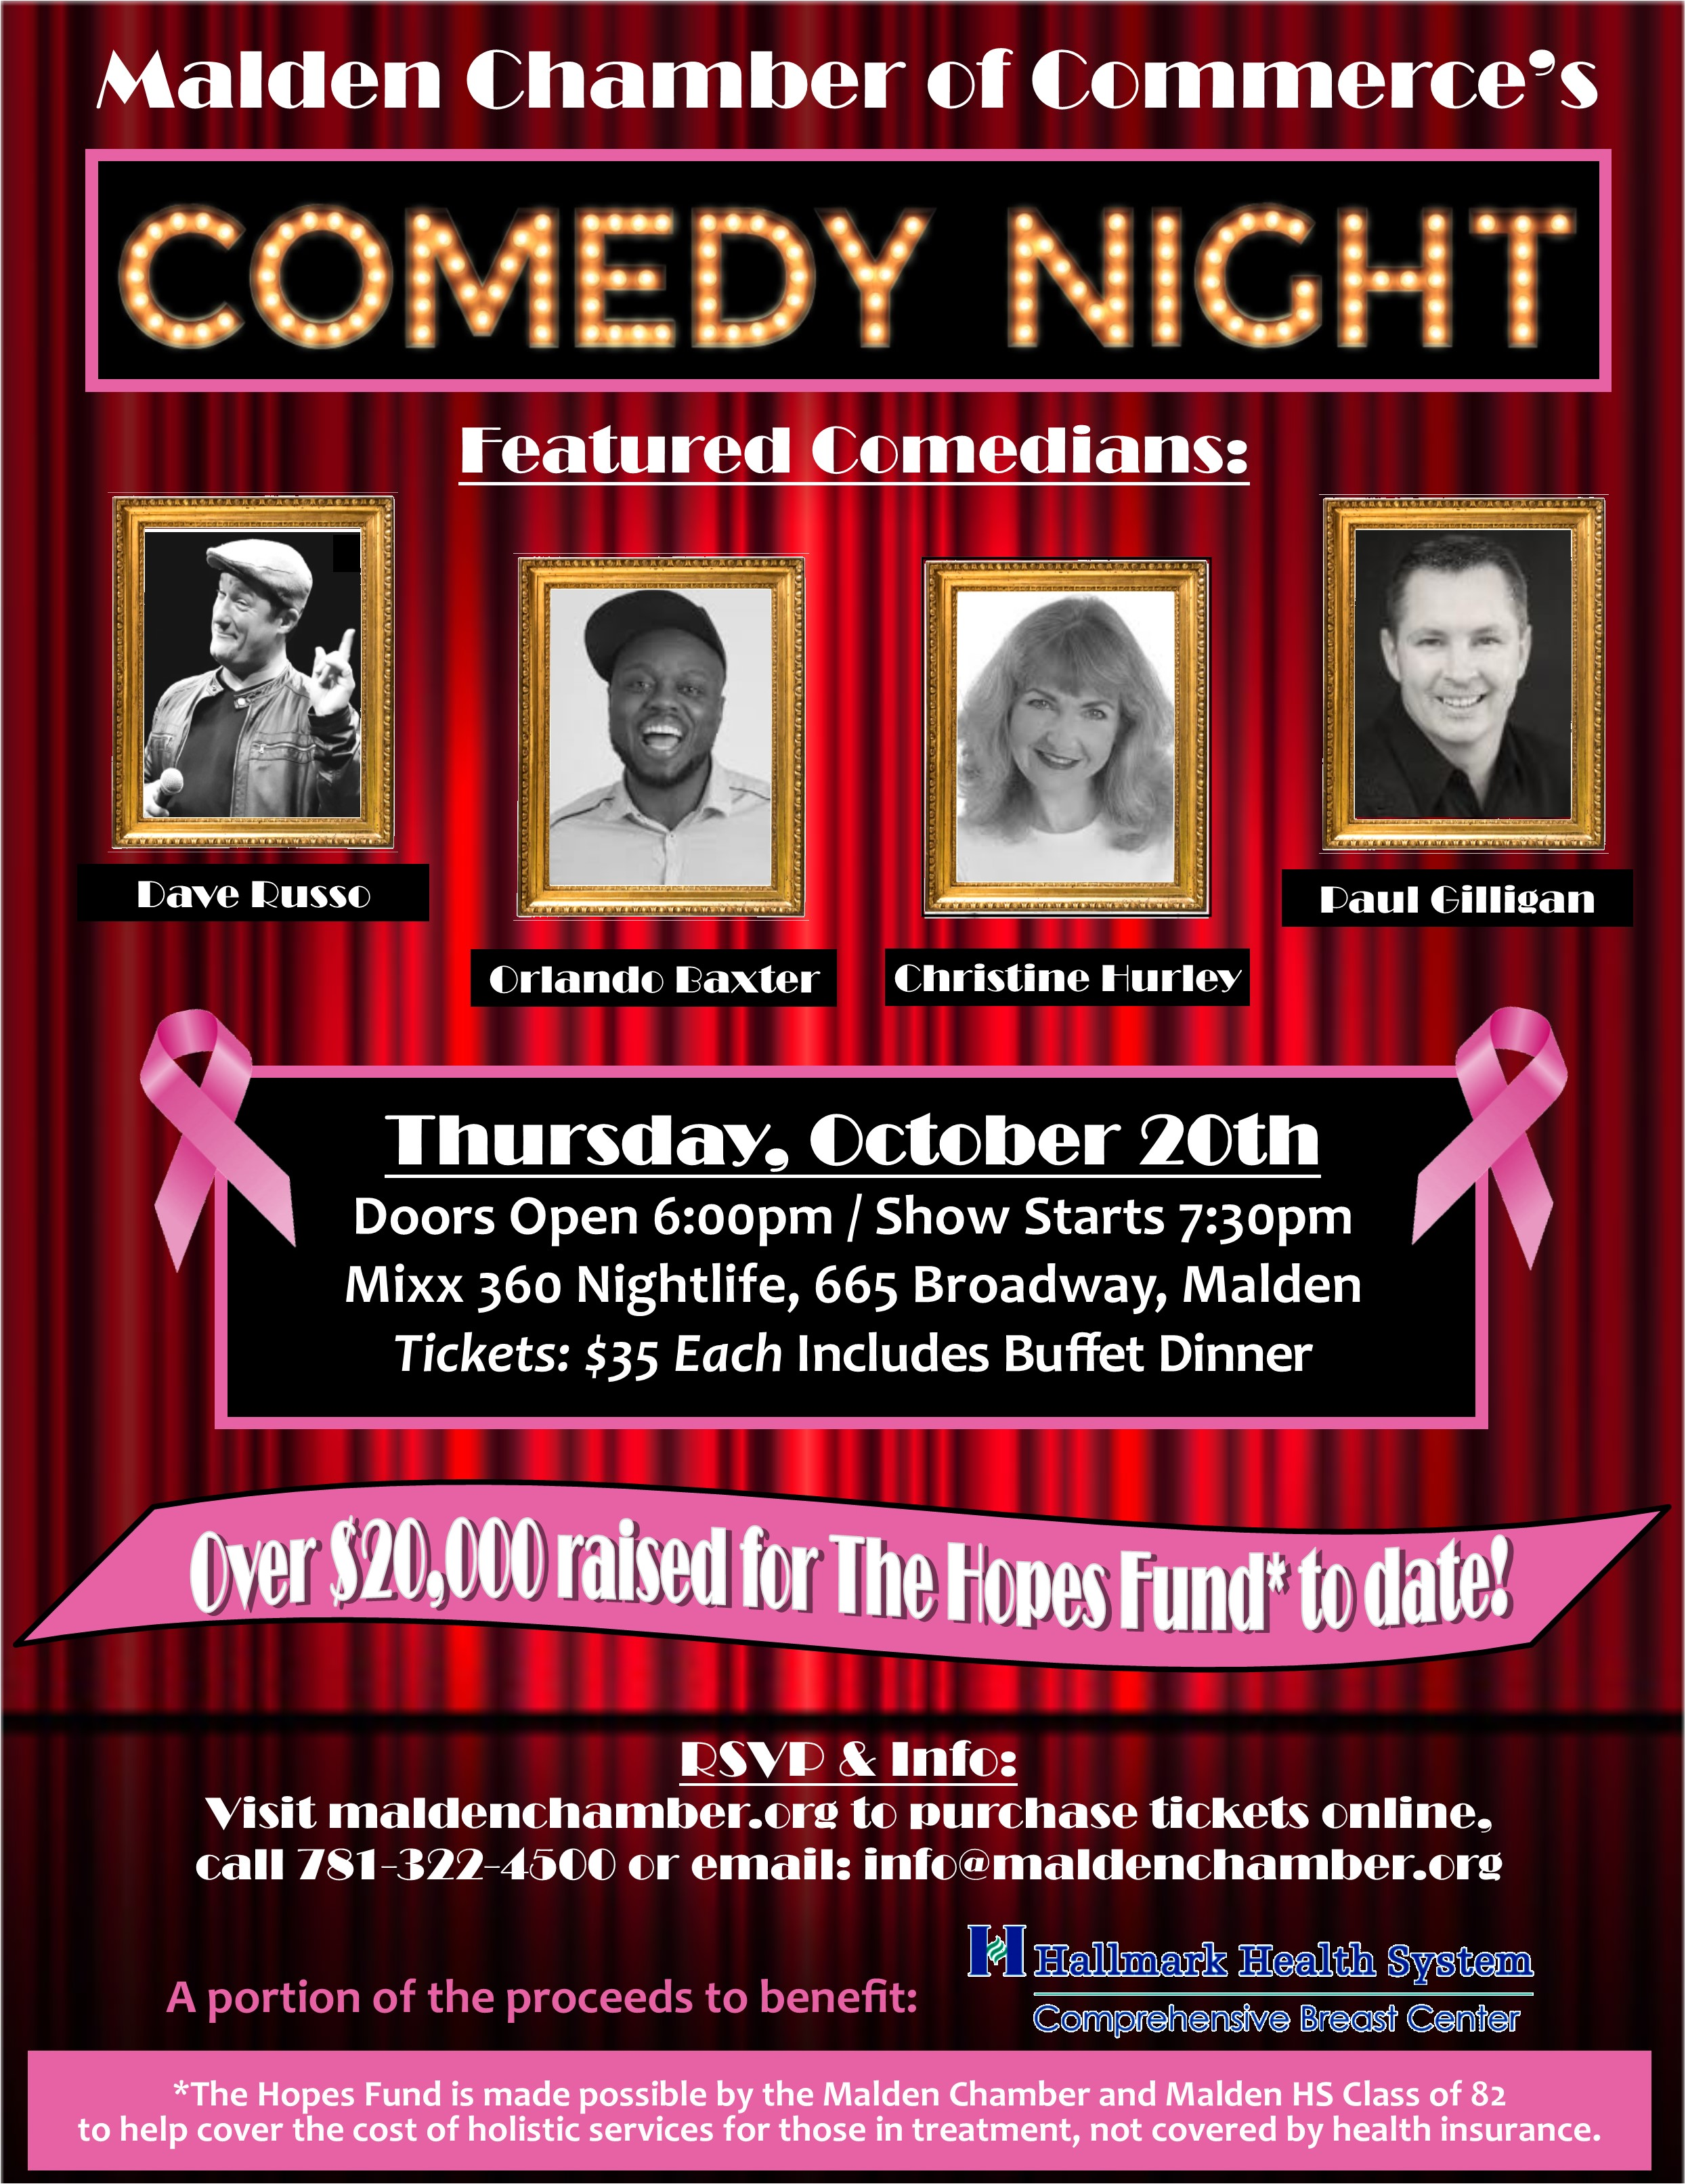 http://www.maldenchamber.org/site/wp-content/uploads/Comedy-Night-Front-Final.jpg